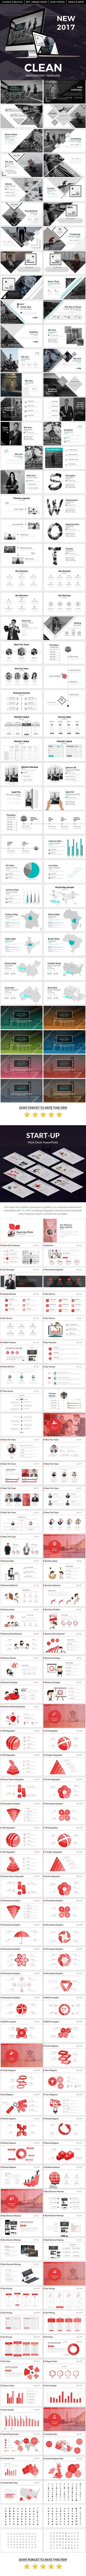 Clean 2017 Powerpoint Presentation Bundle | PowerPoint Templates